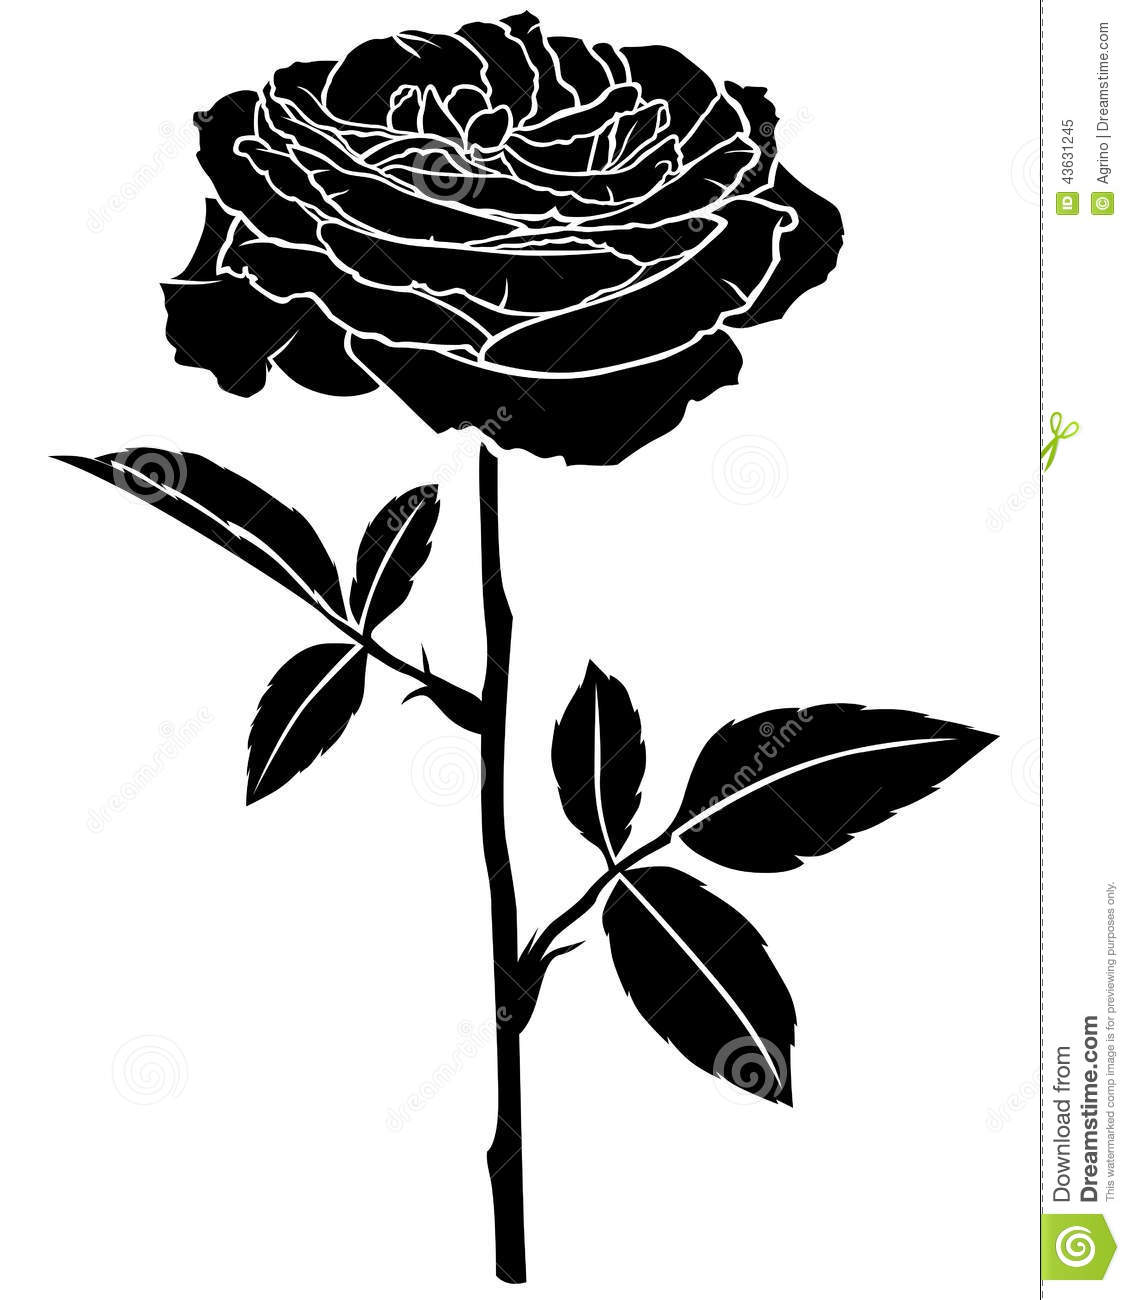 1130x1300 Rose Flower Silhouette Stock Vector